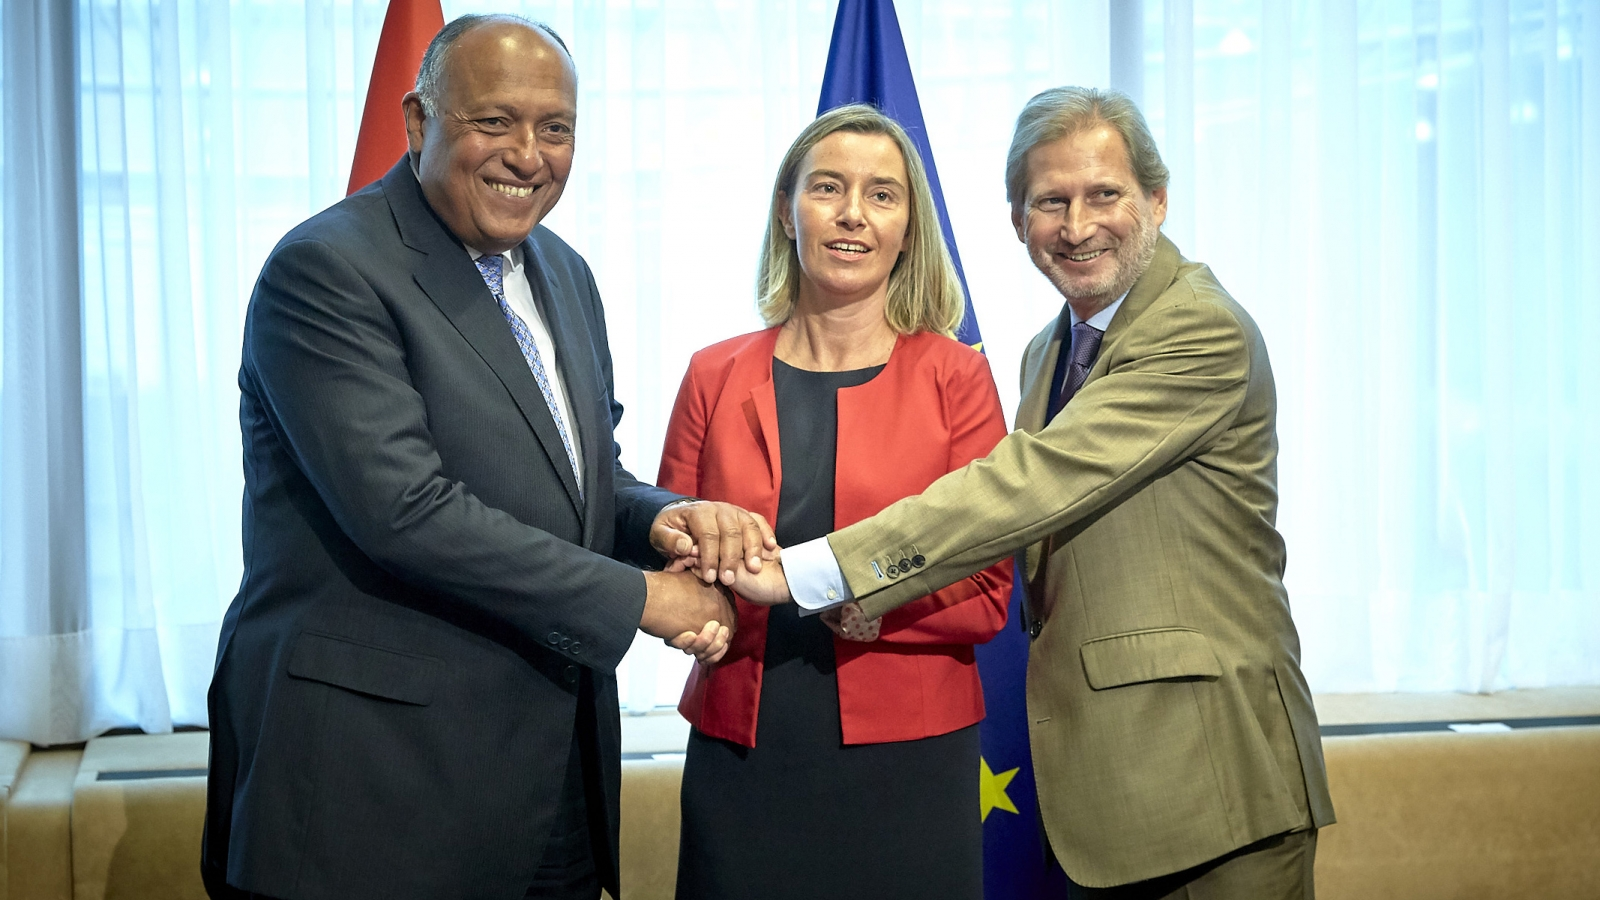 Sameh Shoukry, Federica Mogherini and Johannes Hahn